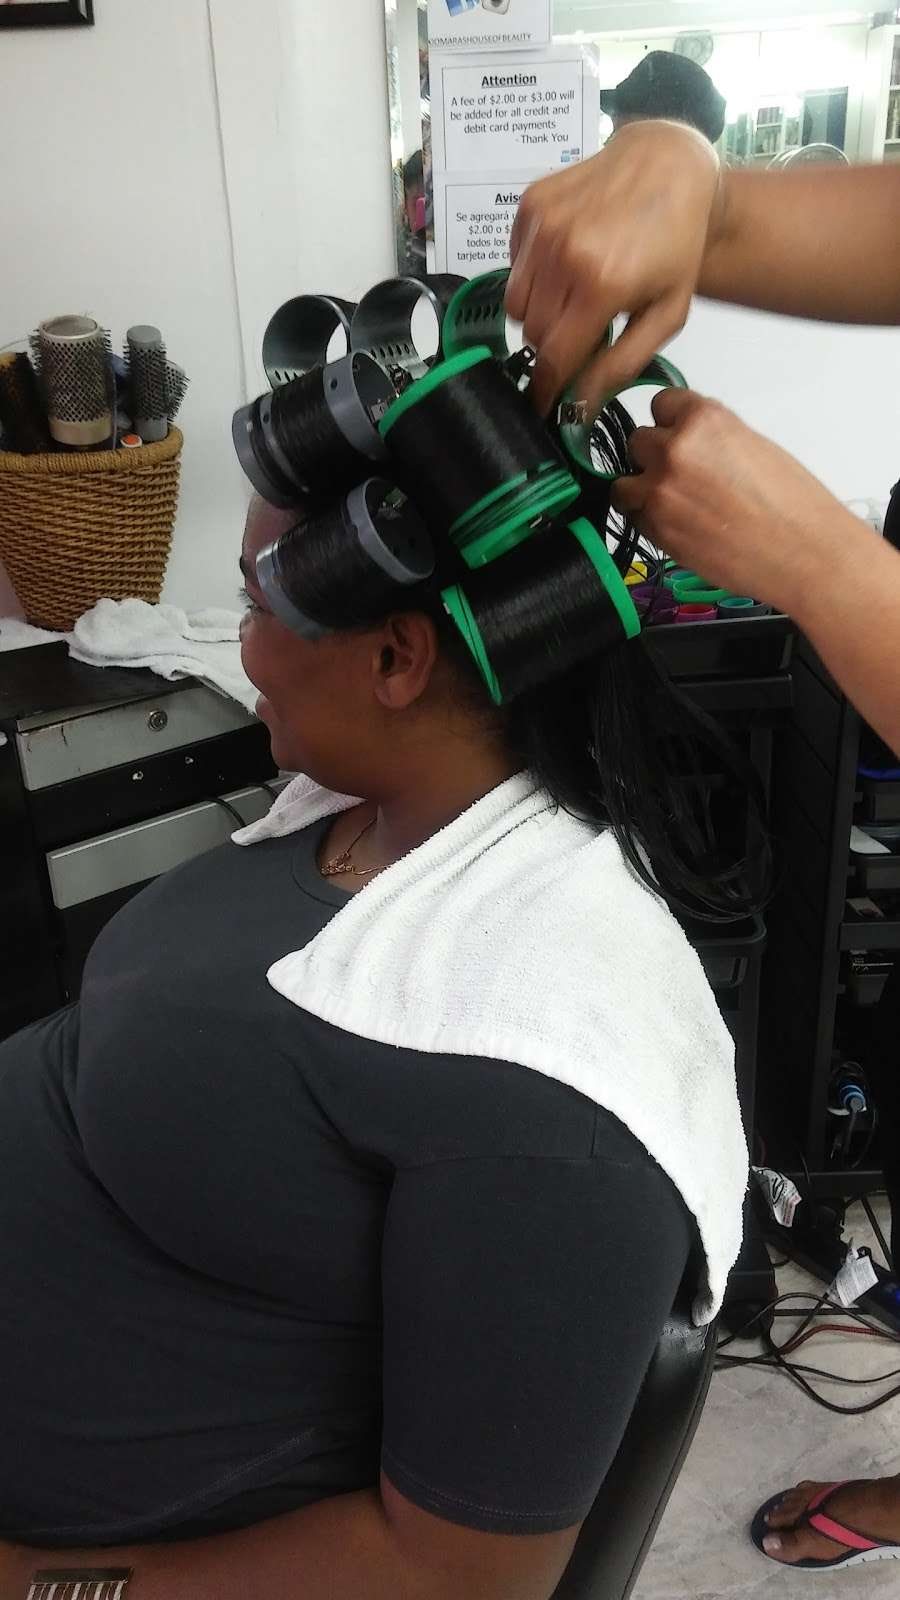 Xiomaras House of Beauty - hair care  | Photo 8 of 9 | Address: 1602 NW 36th St, Miami, FL 33142, USA | Phone: (786) 371-6217